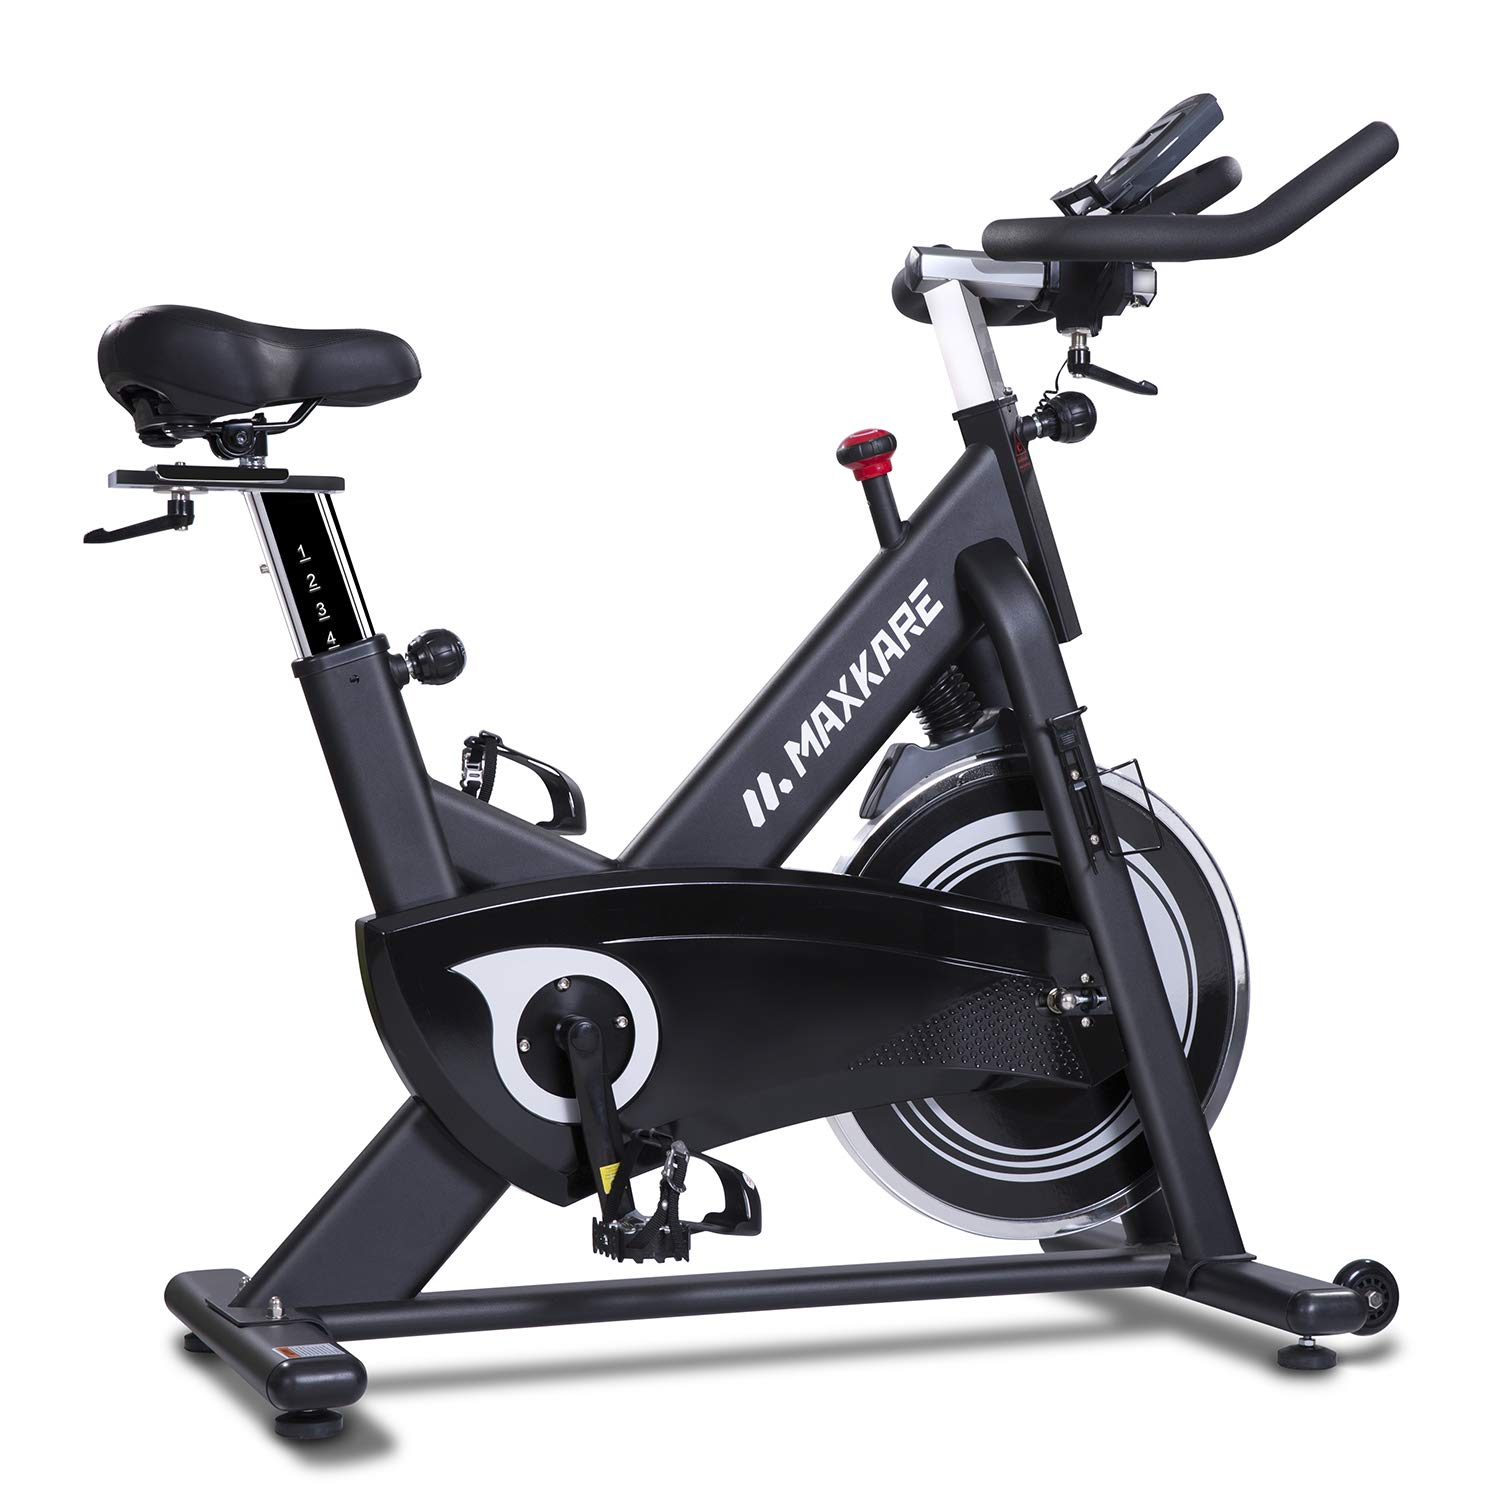 MaxKare Magnetic Exercise Bikes Stationary Belt Drive Indoor Cycling Bike with High Weight Capacity Adjustable Magnetic Resistance w/LCD Monitor/Pulse Sensors/Tablet Holder (Black)